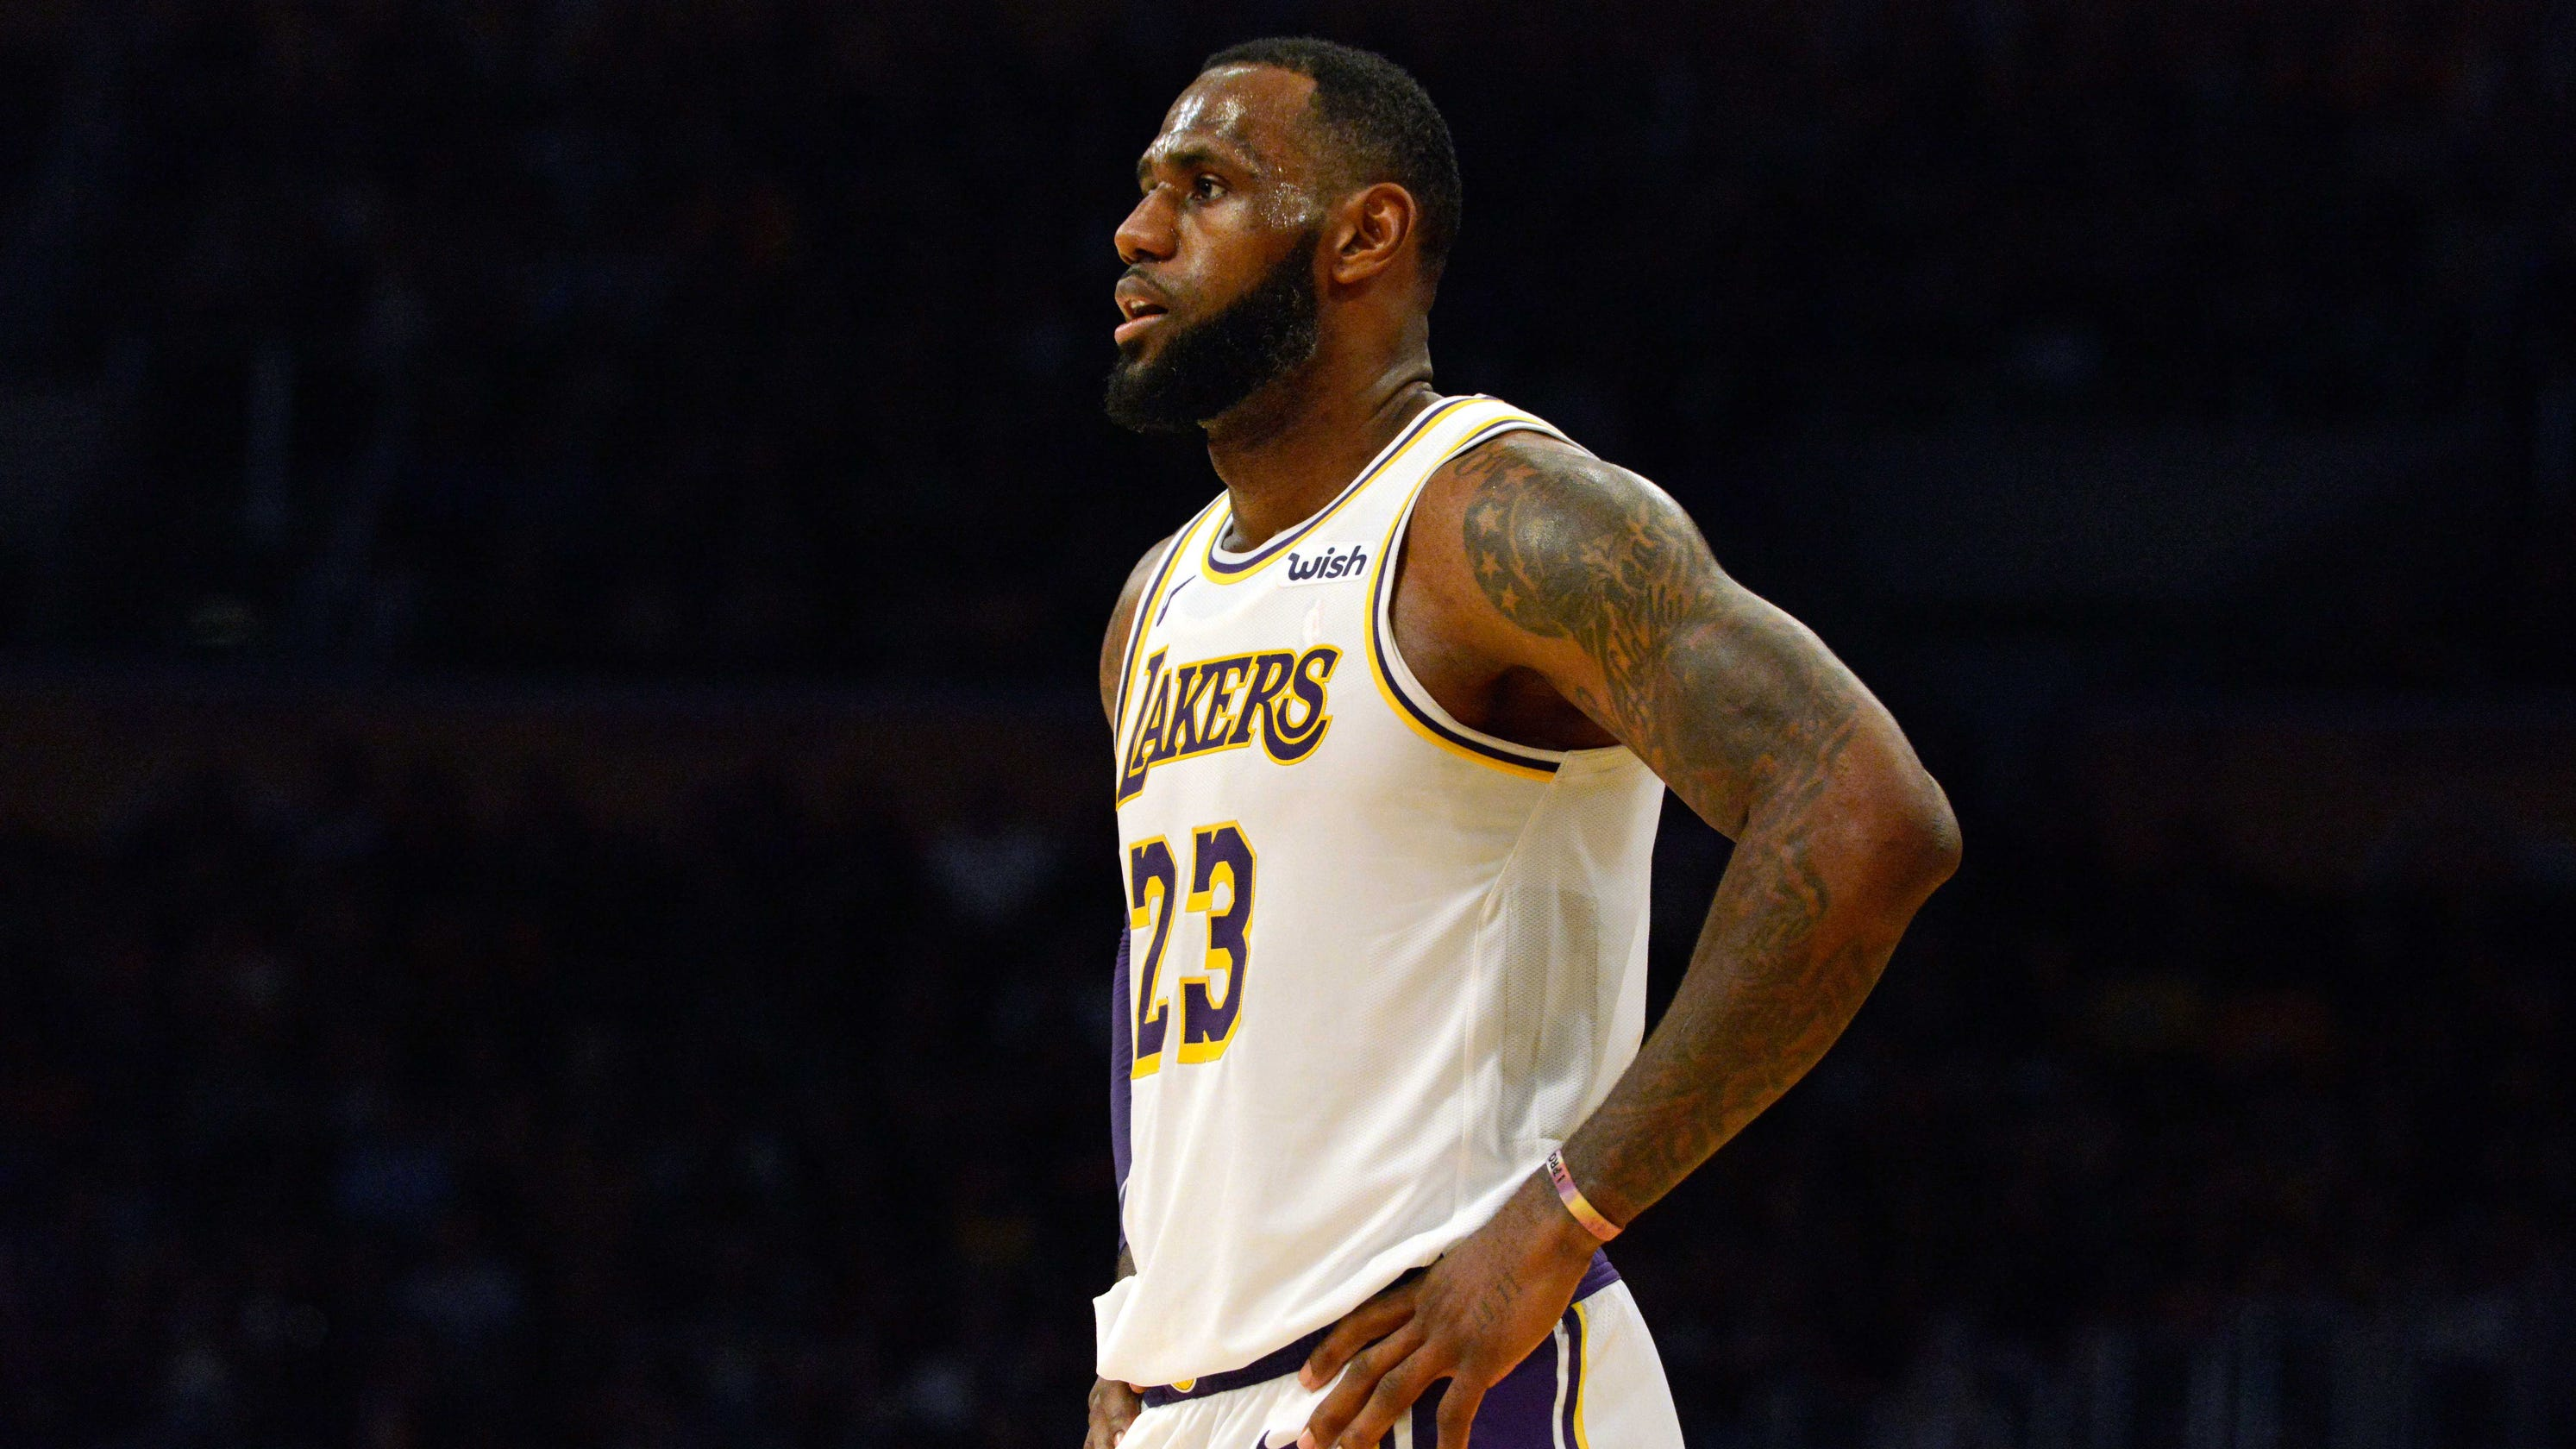 LeBron James rips NFL owners: 'Old white men' with 'slave mentality'